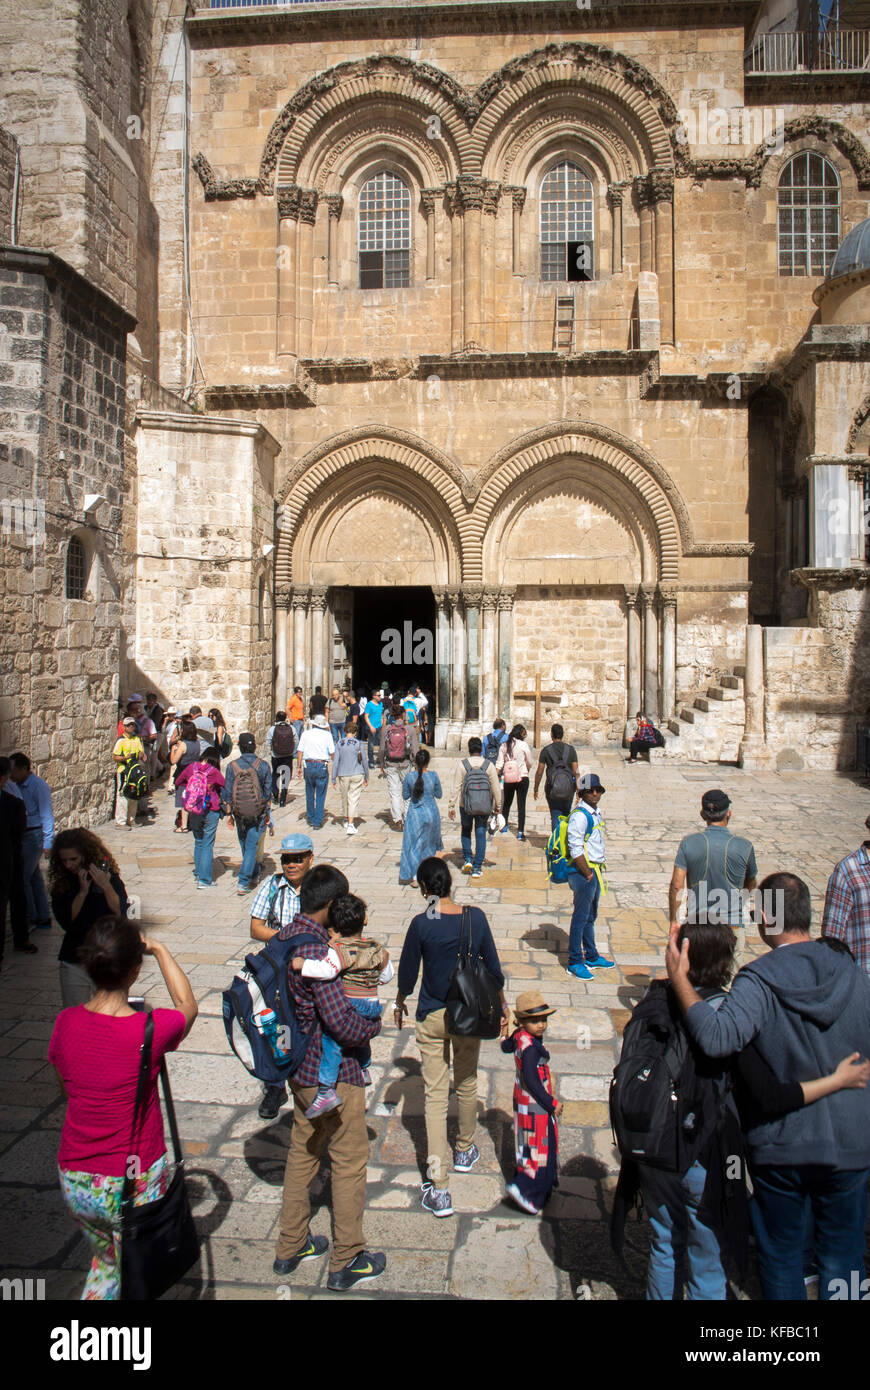 Entrance to The Church of the Holy Sepulchre, Old City, Jerusalem. - Stock Image